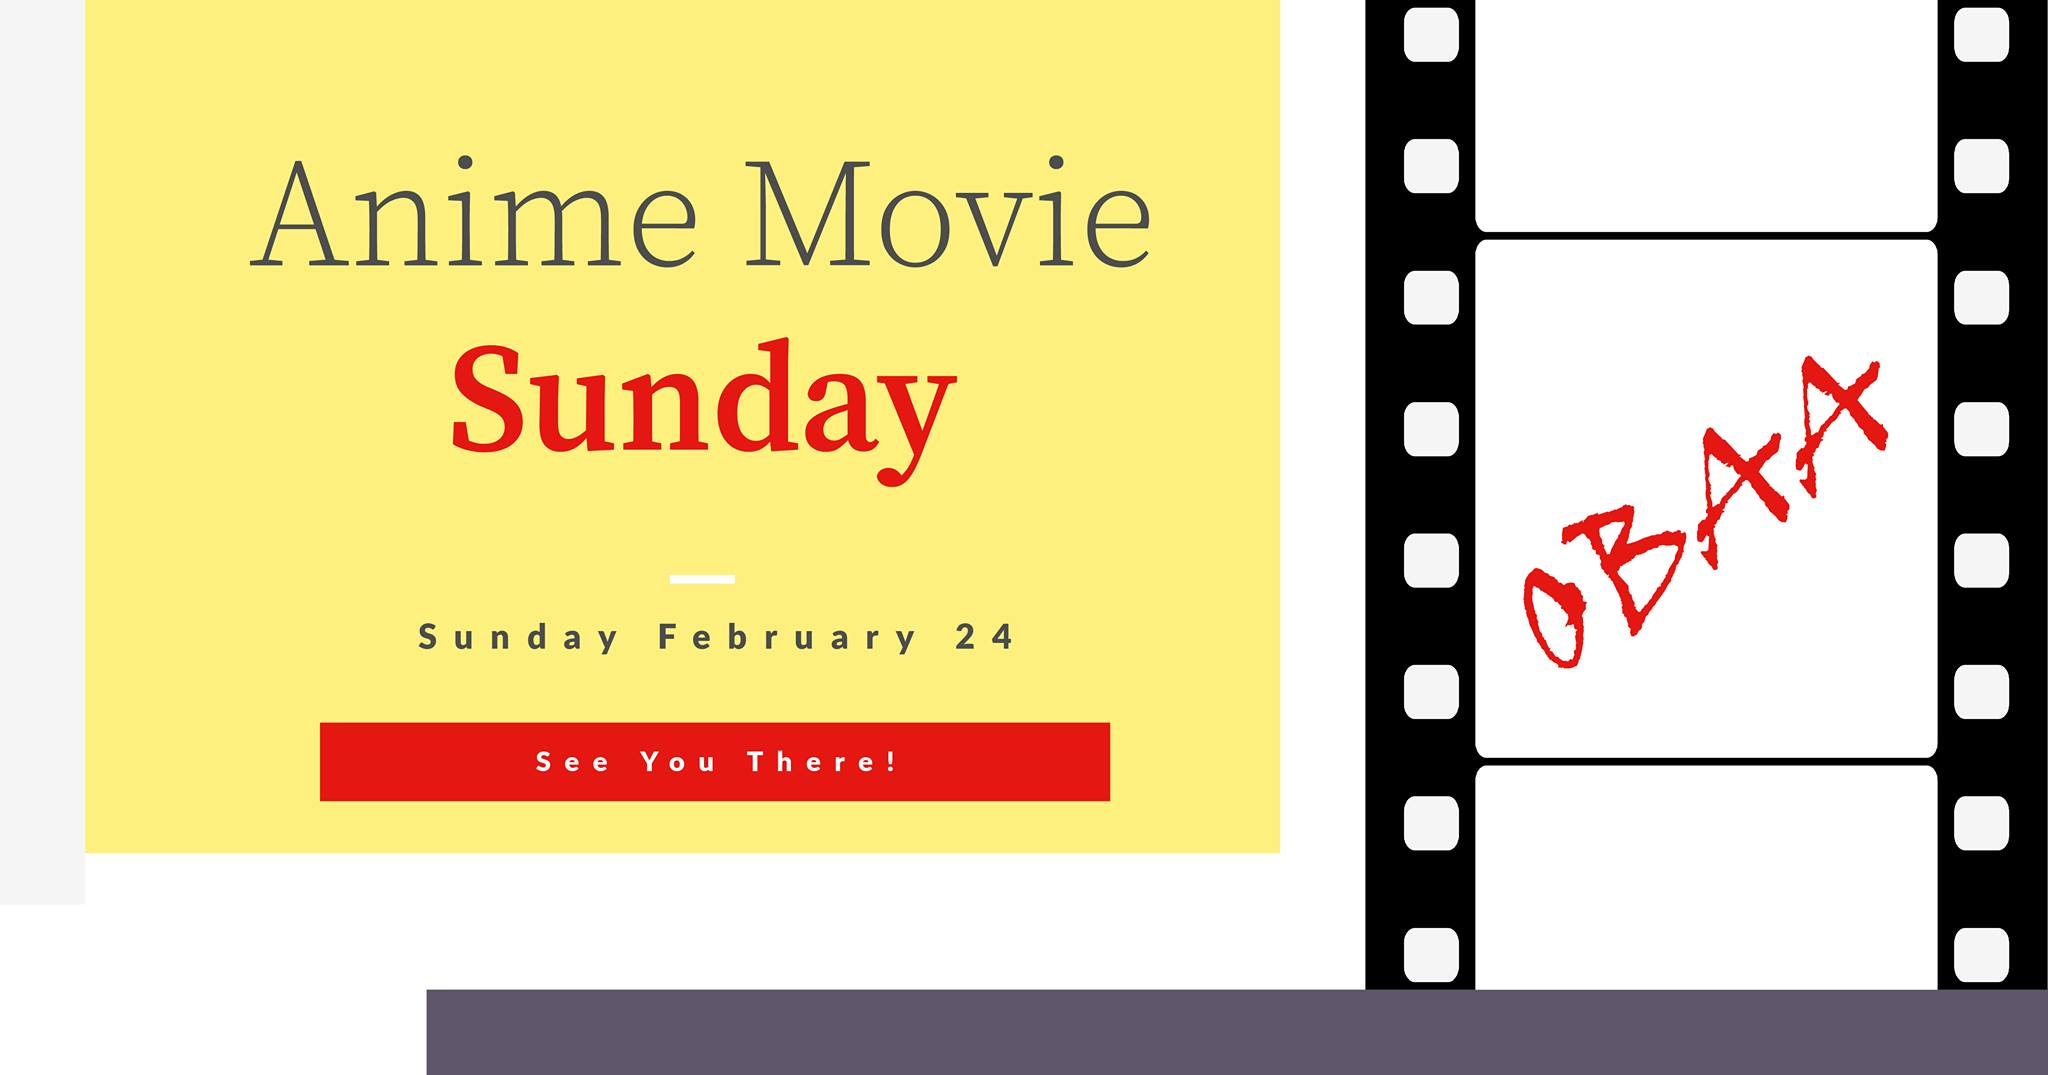 Søndag 24 februar 2019 - Anime Movie Sunday